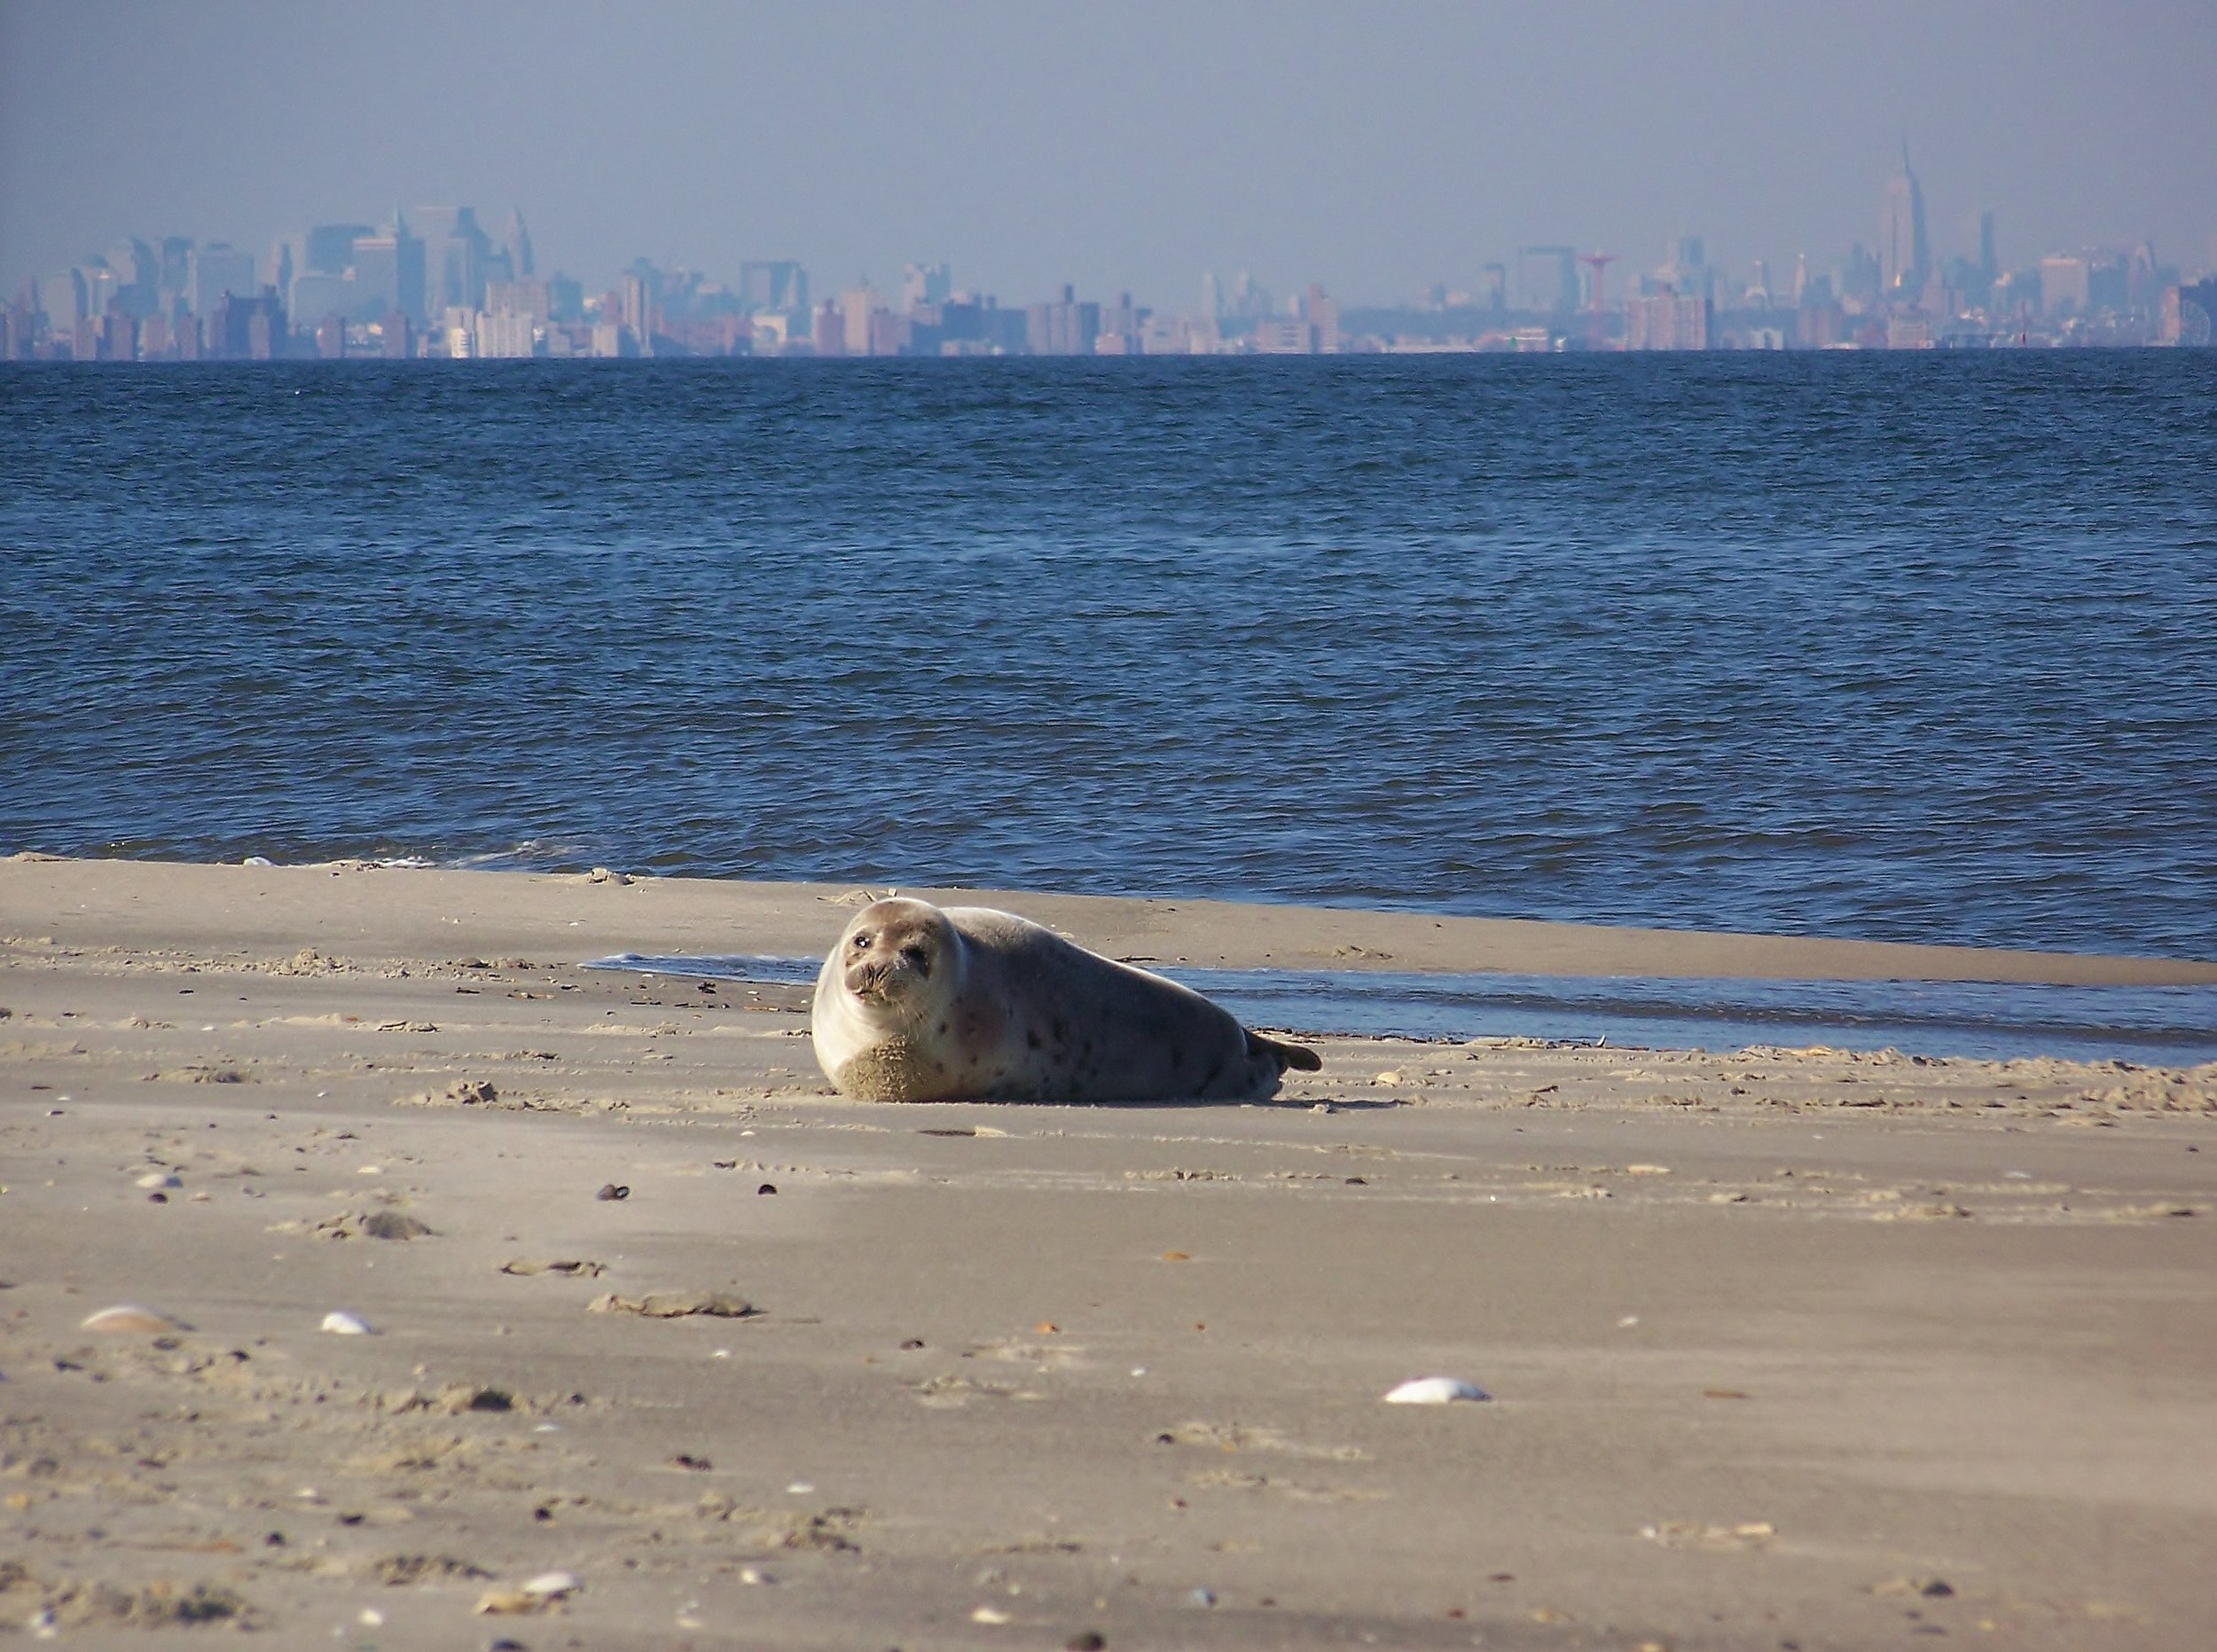 A juvenile harp seal resting on a sandy beach downstream from New York City.